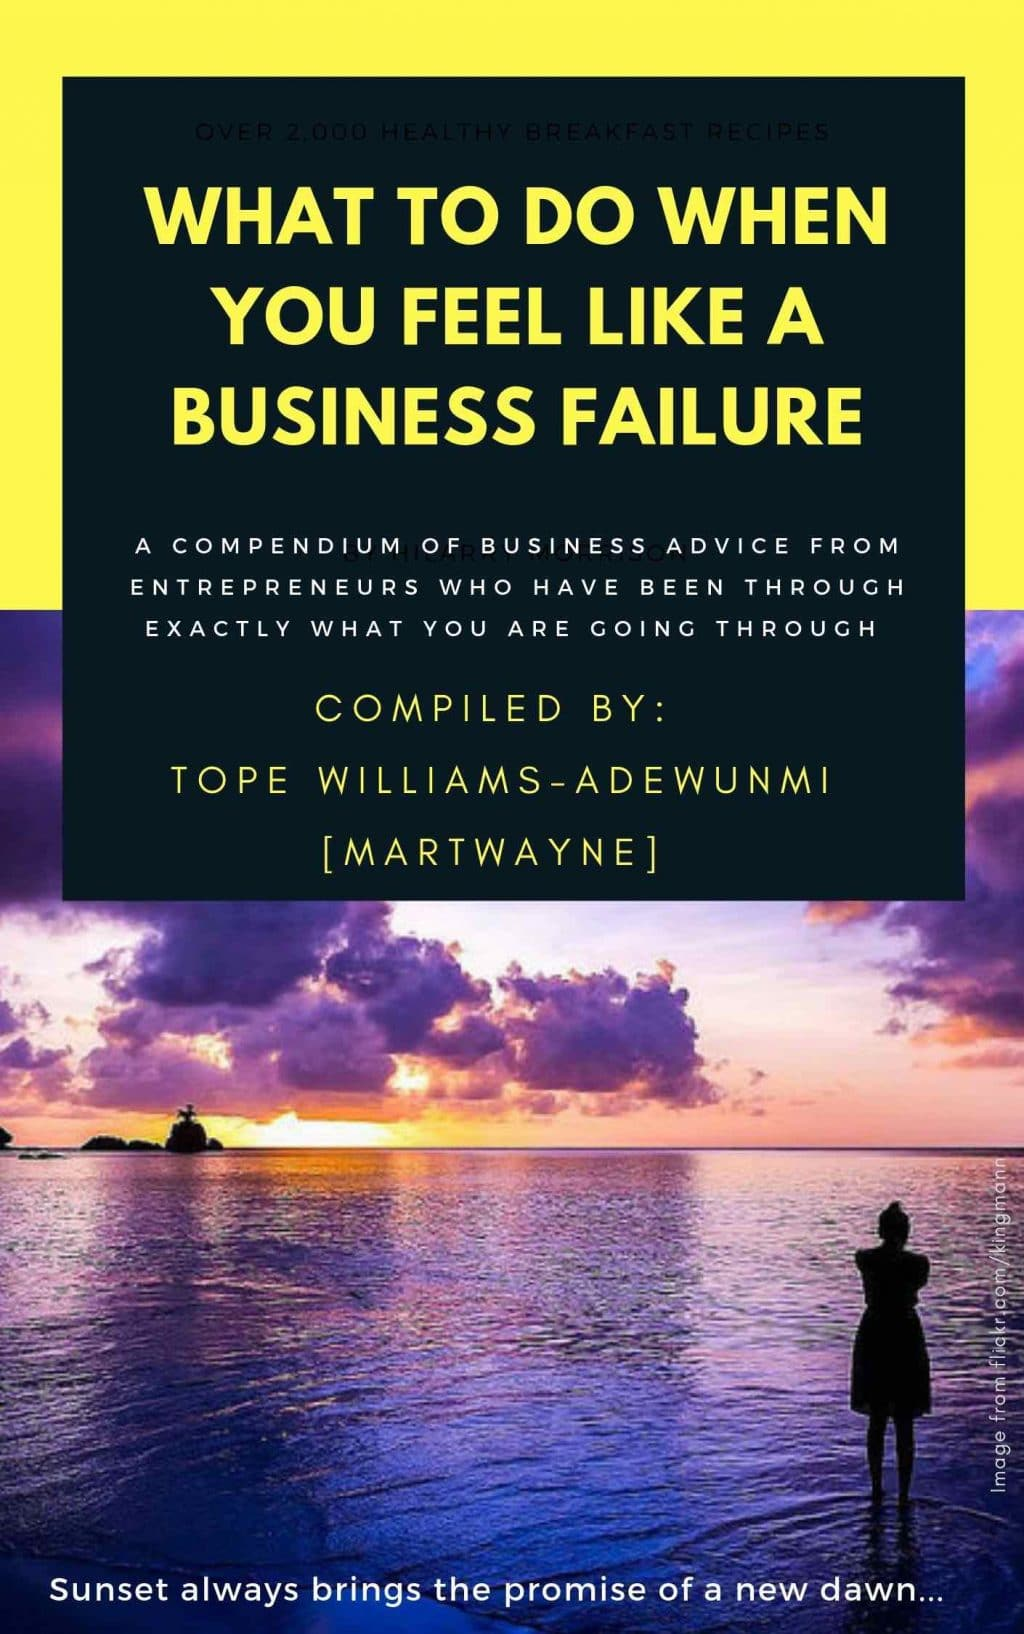 What to do when you feel like a Business Failure